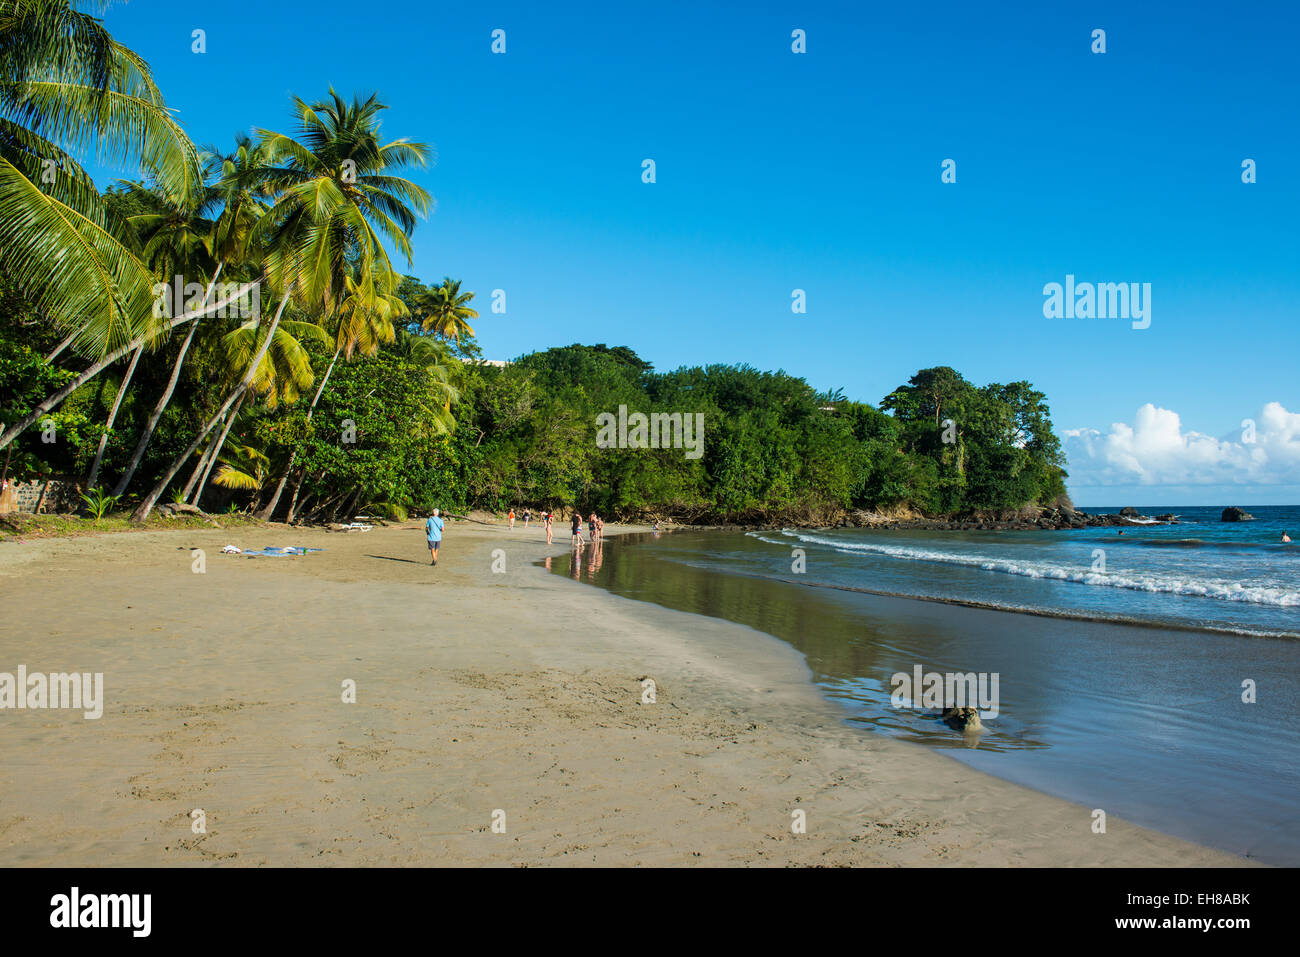 Bacolet Beach, Tobago, Trinidad and Tobago, West Indies, Caribbean, Central America - Stock Image